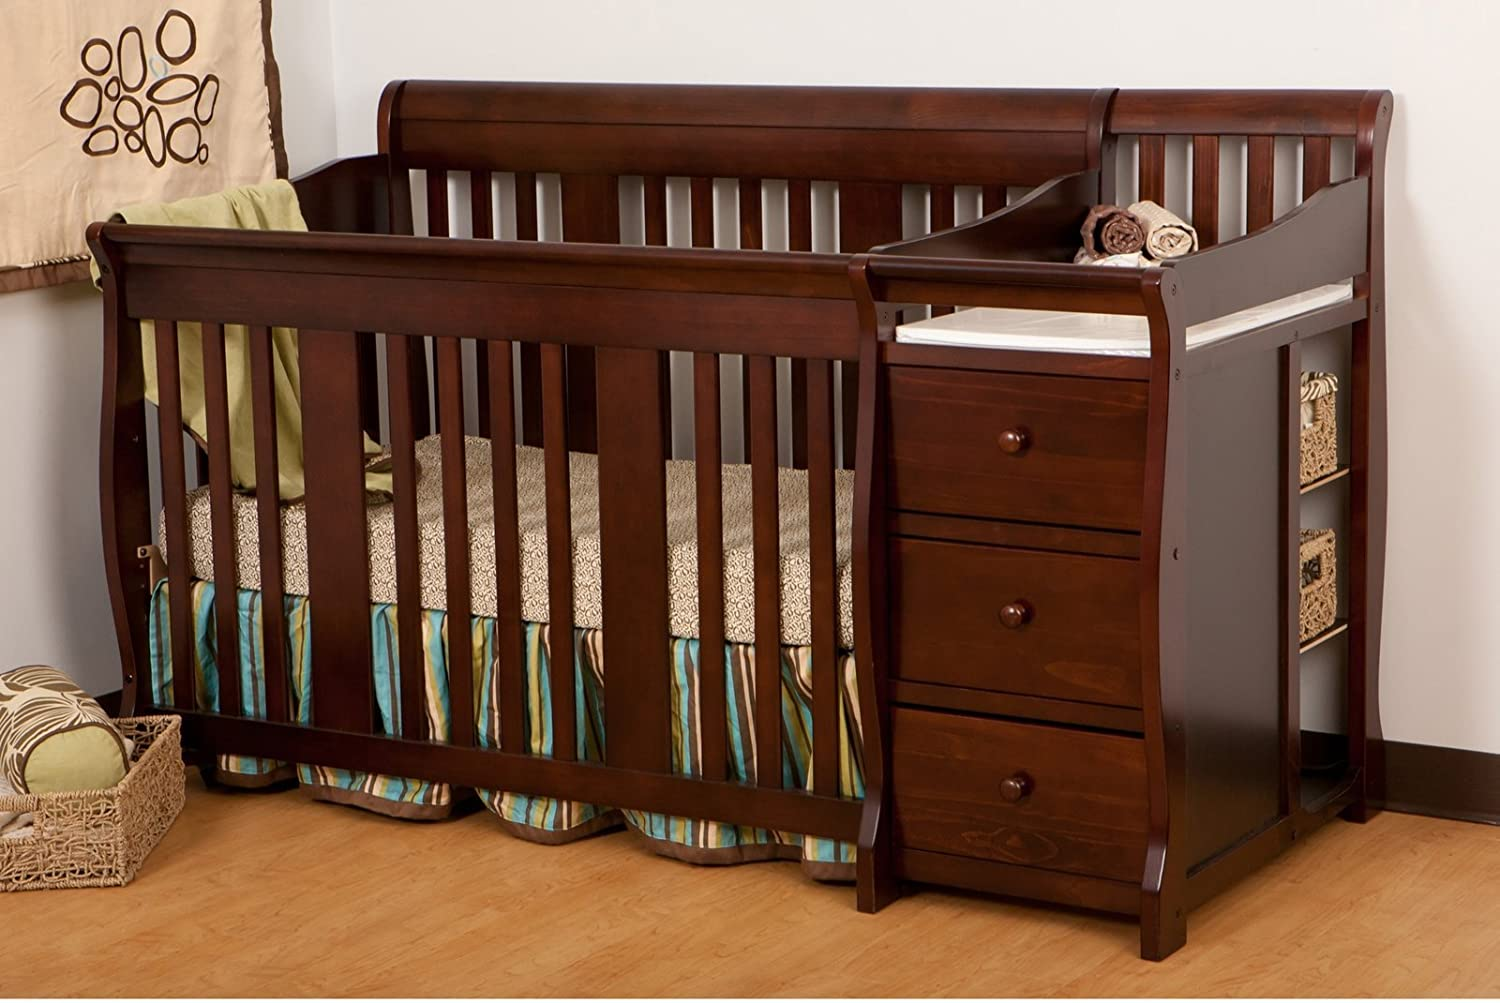 me rmscene g dream with crib cribs on catalog baby chloe convertible changing table changer in